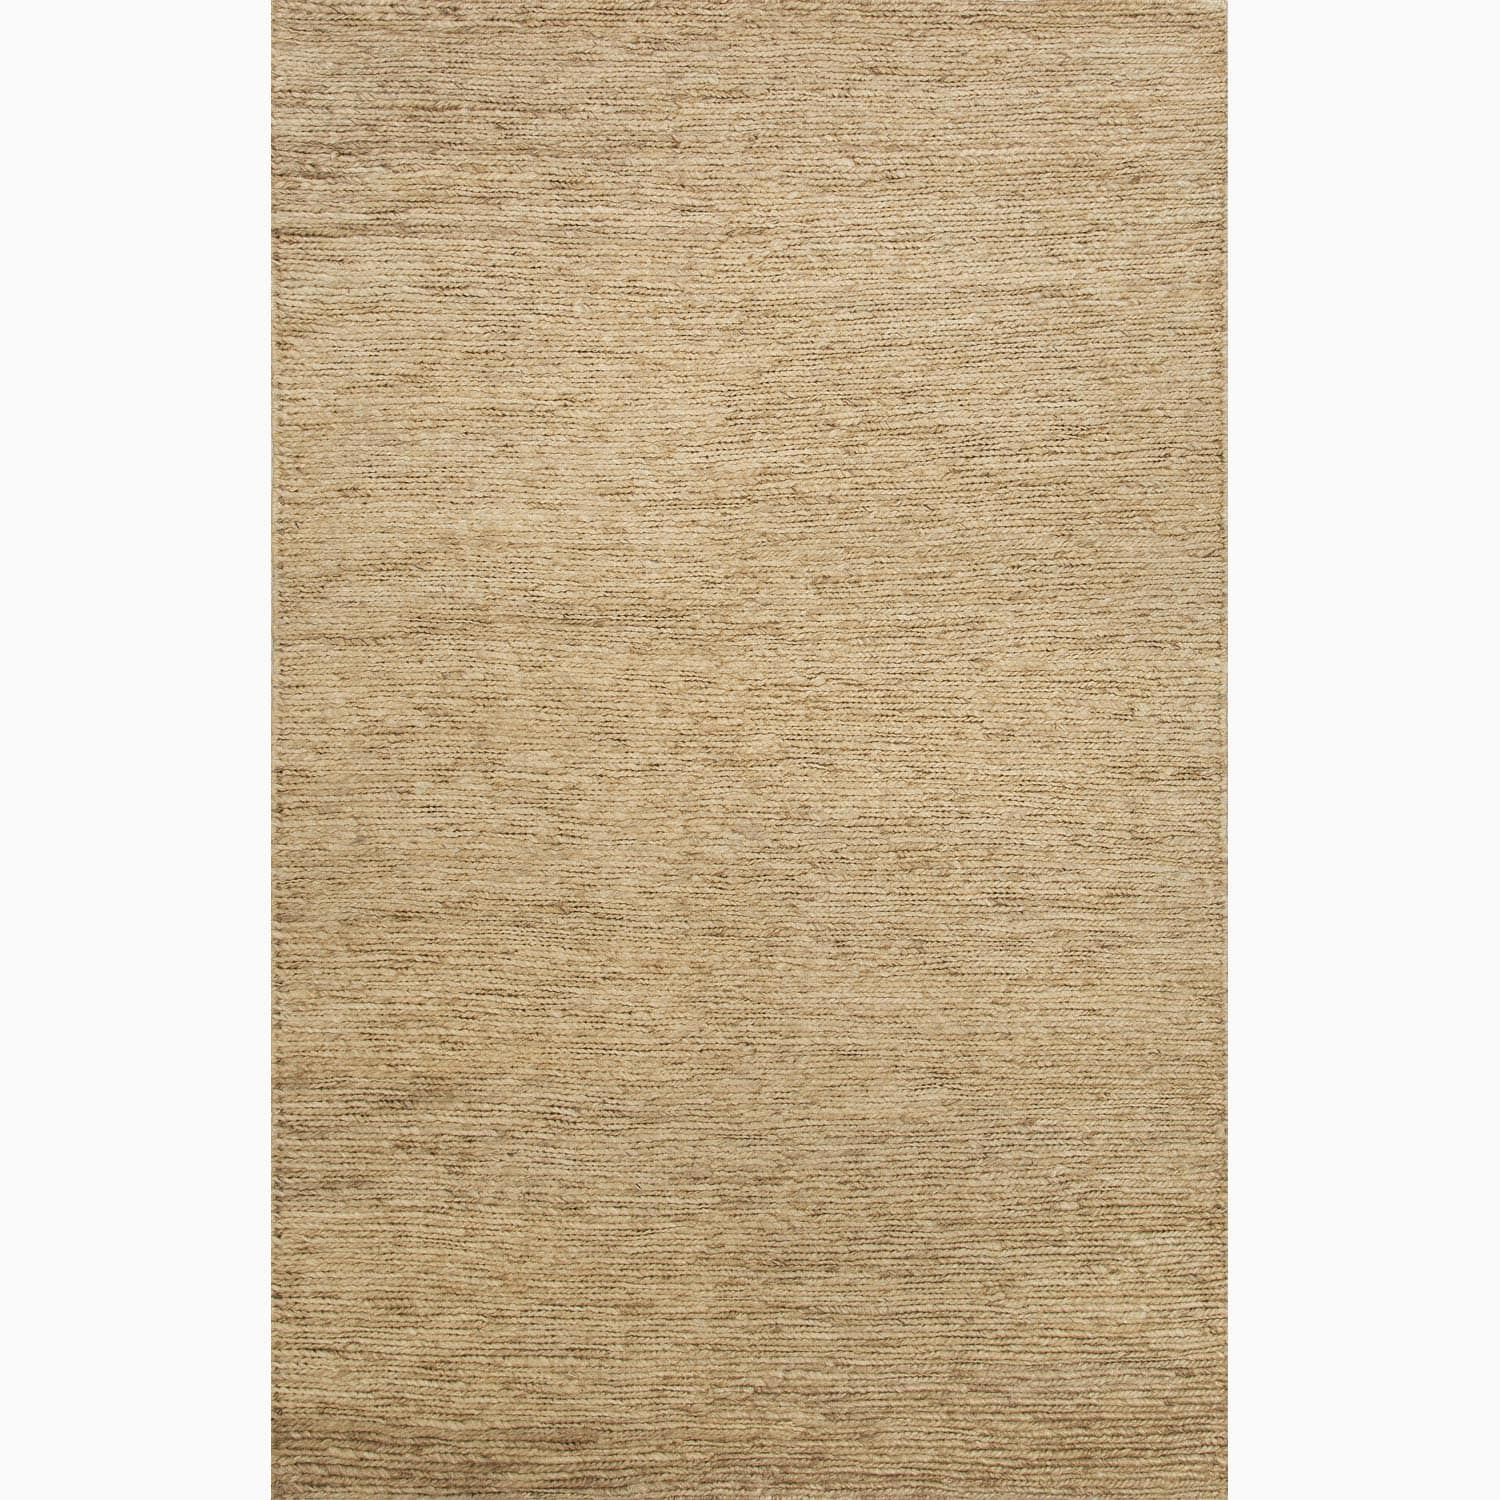 Handmade Ivory/ White Hemp Eco-friendly Rug (8 x 10)